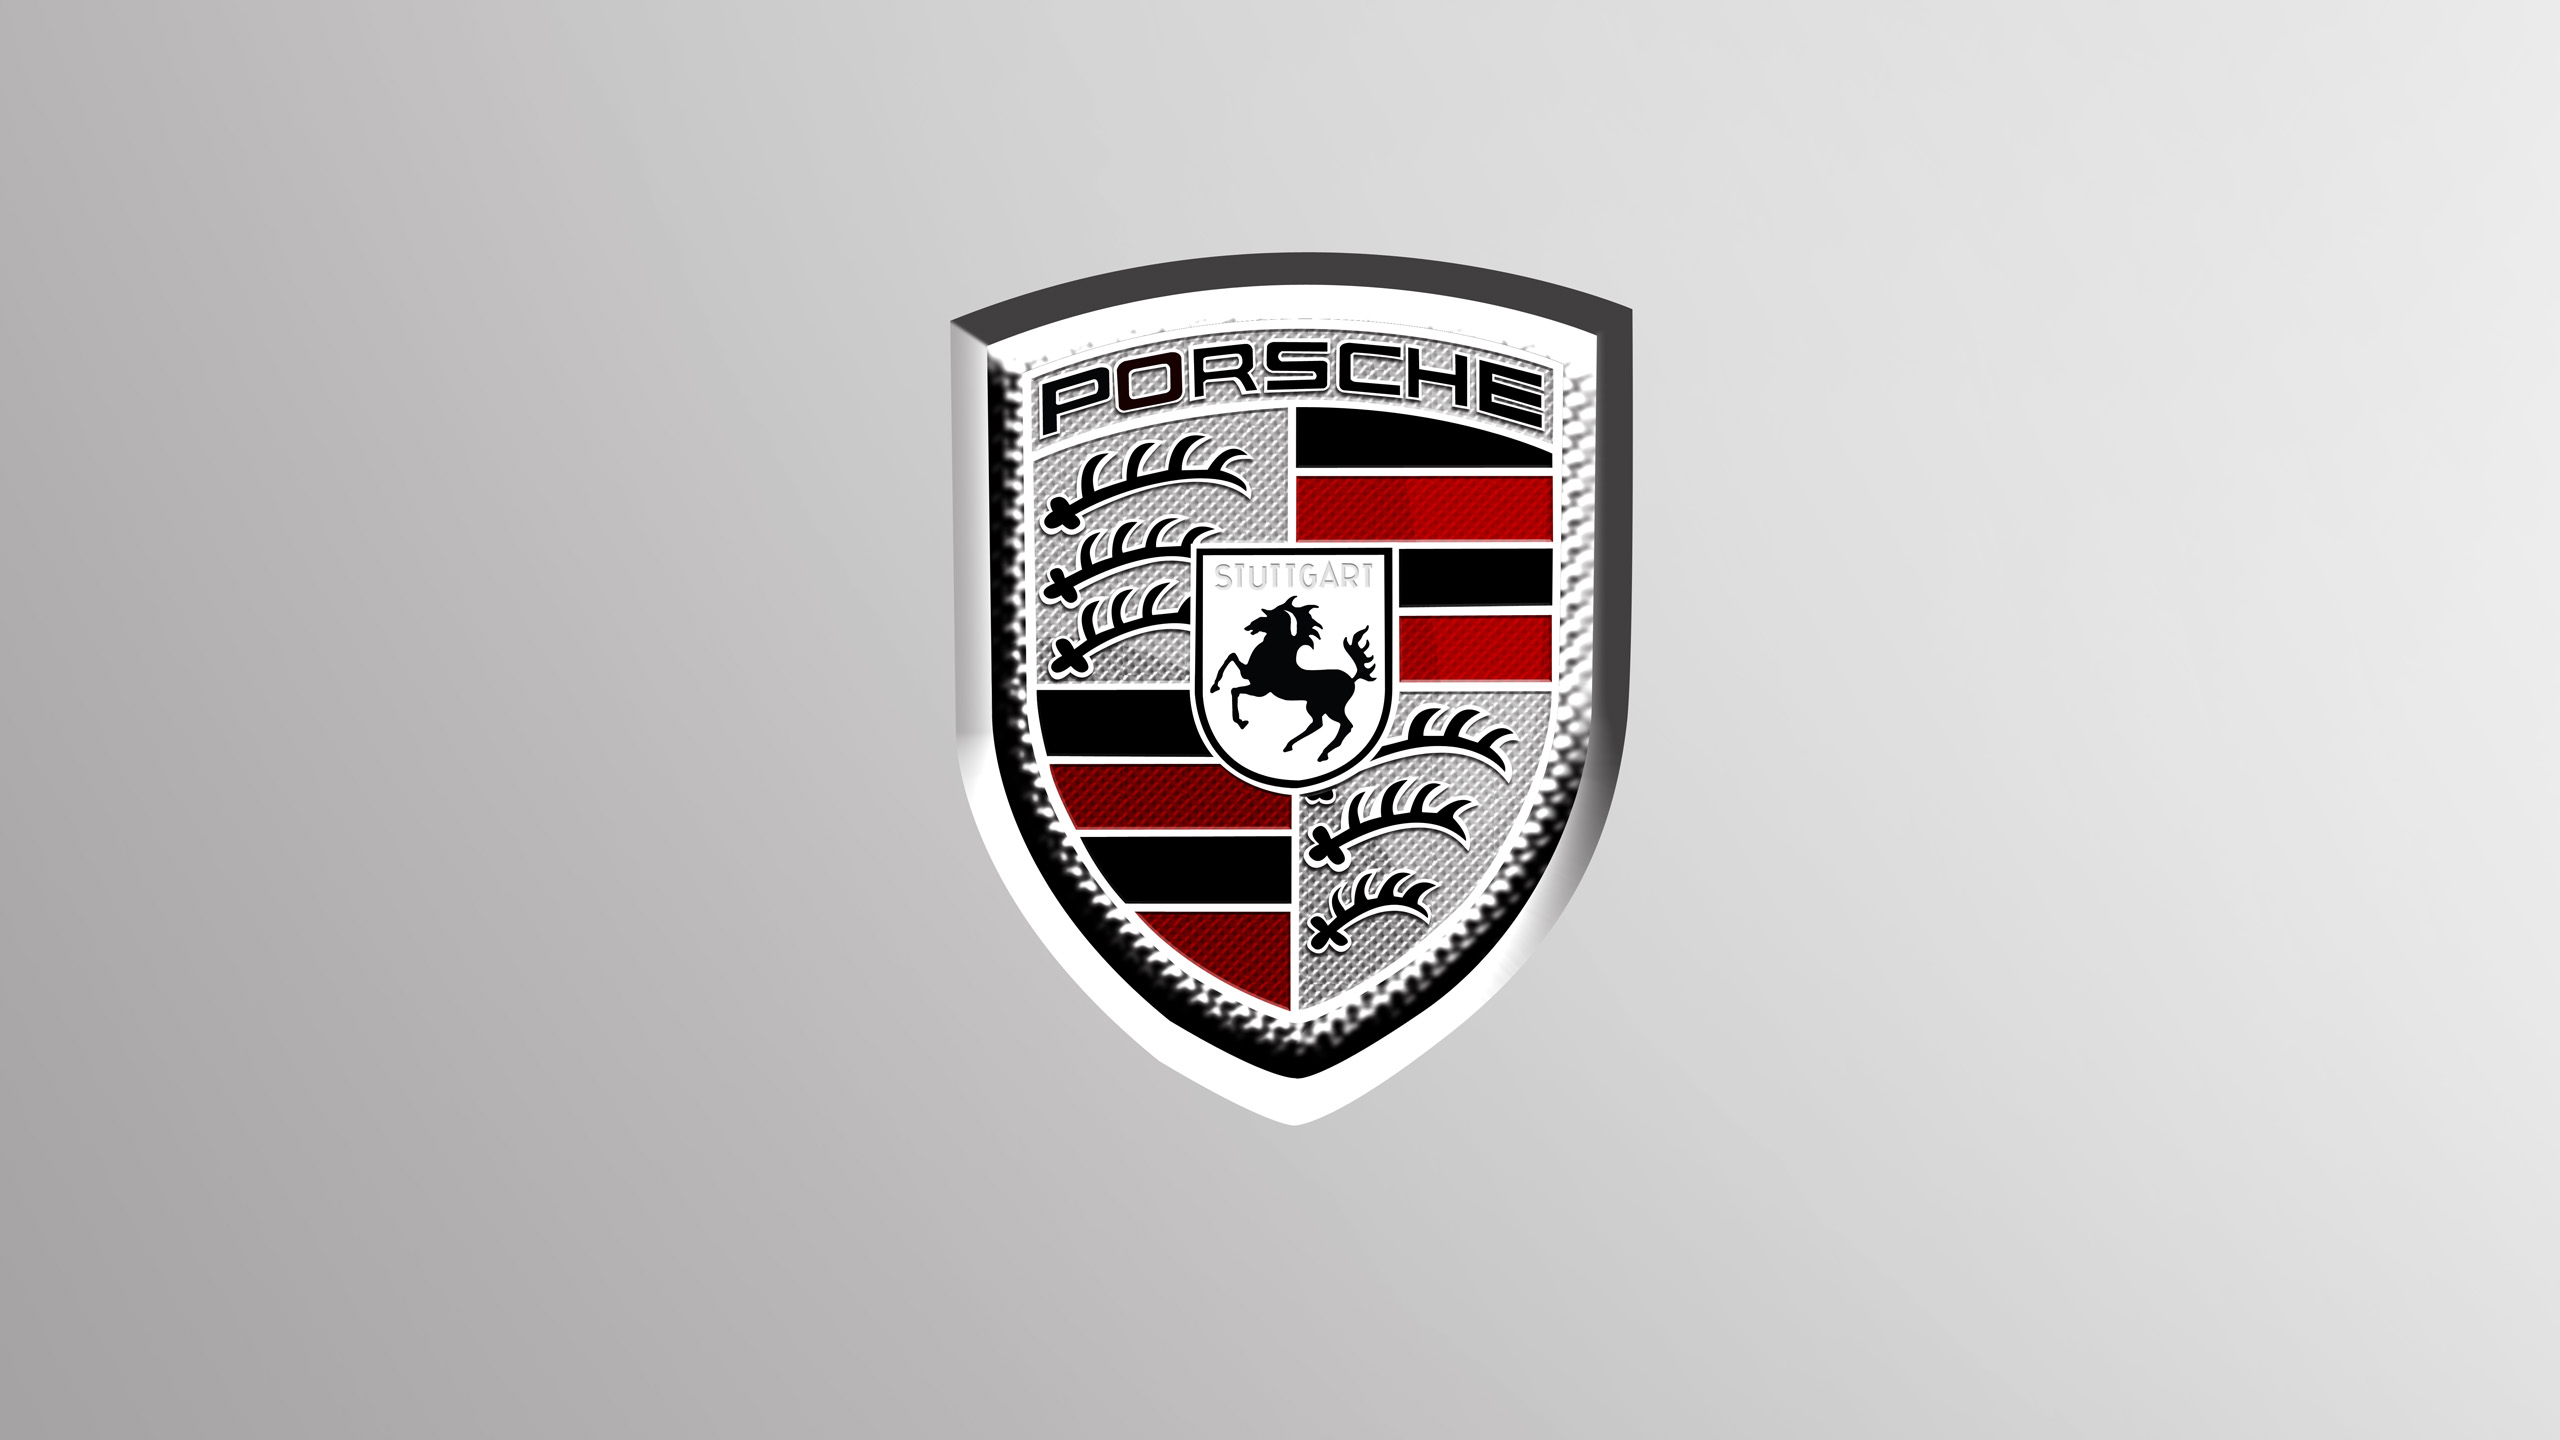 7 hd porsche logo wallpapers. Black Bedroom Furniture Sets. Home Design Ideas